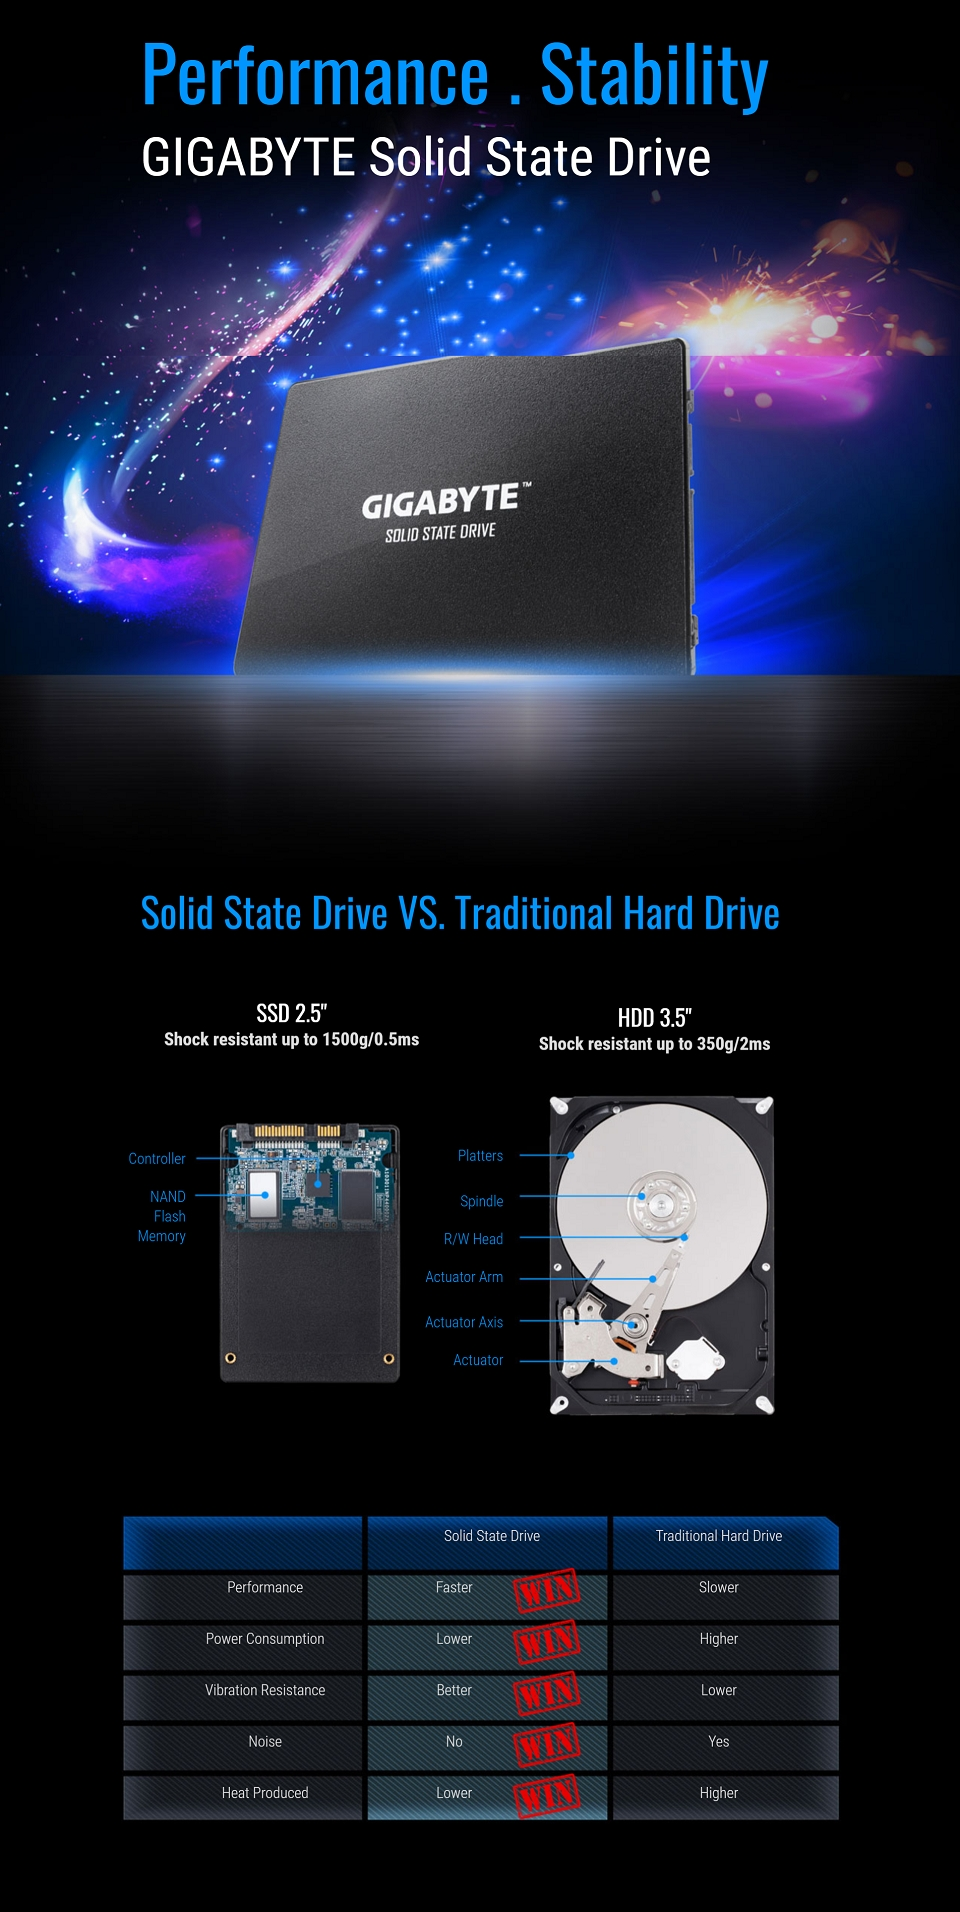 Gigabyte SATA 2.5in SSD 120GB features